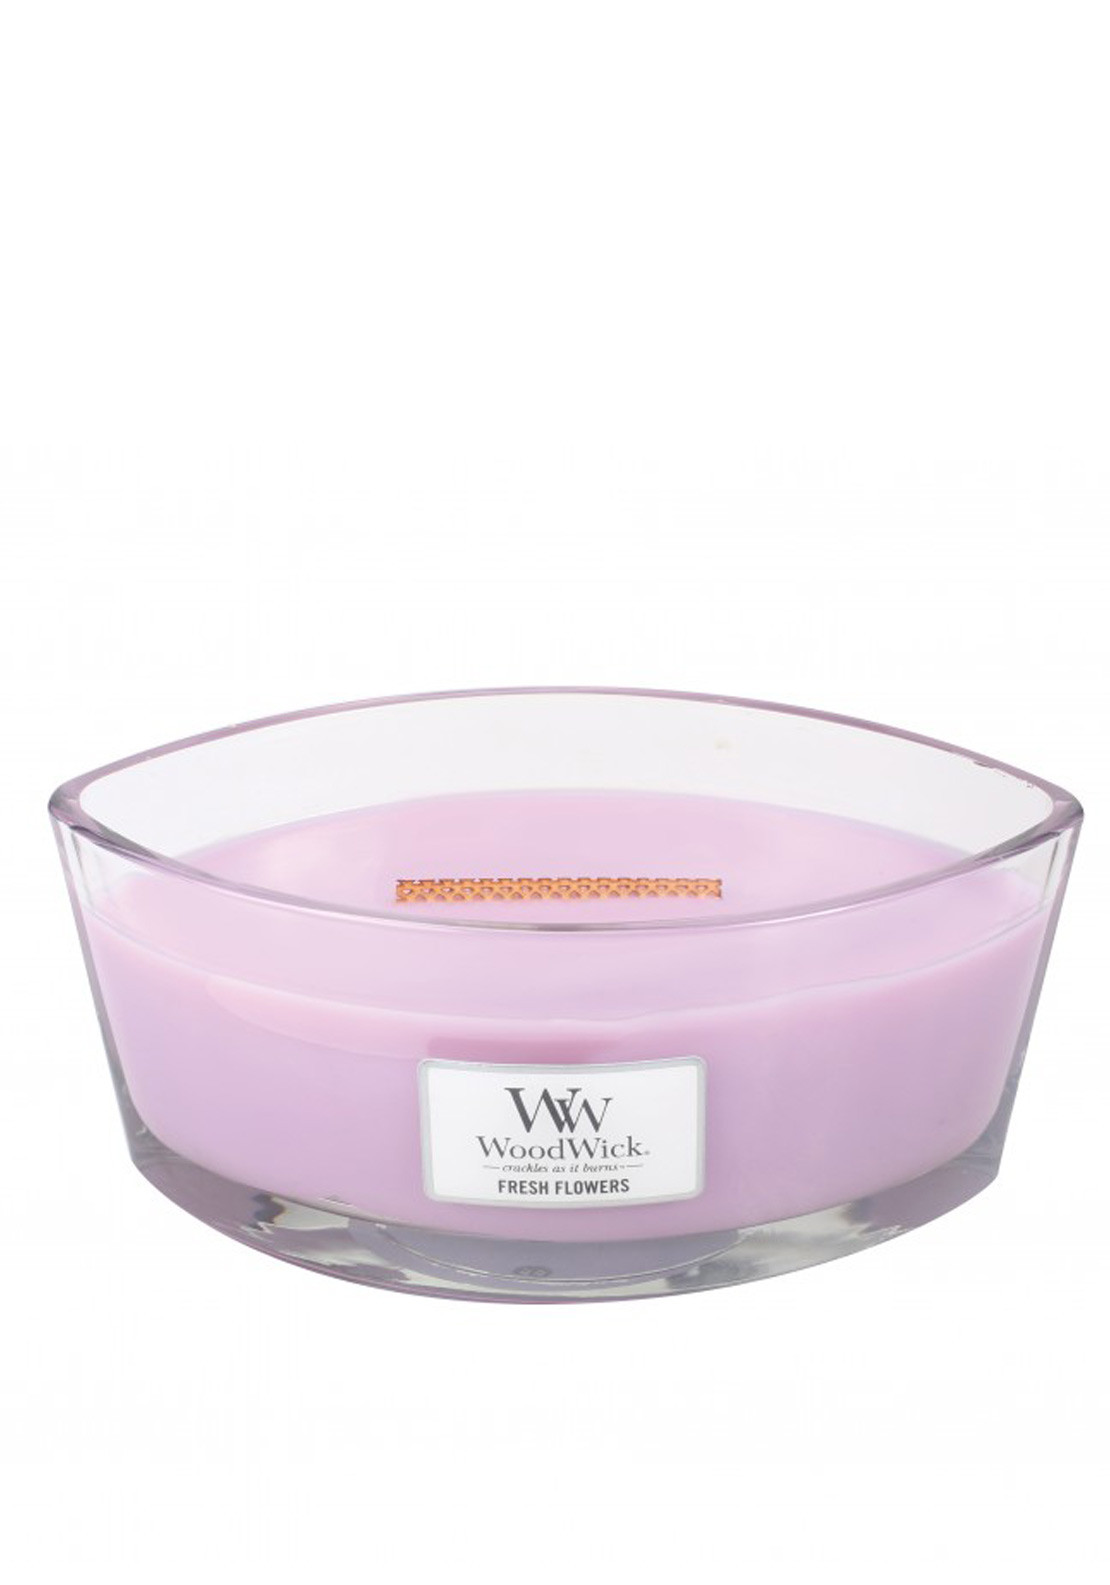 WoodWick Hearthwick Flame Large Candle, Fresh Flowers